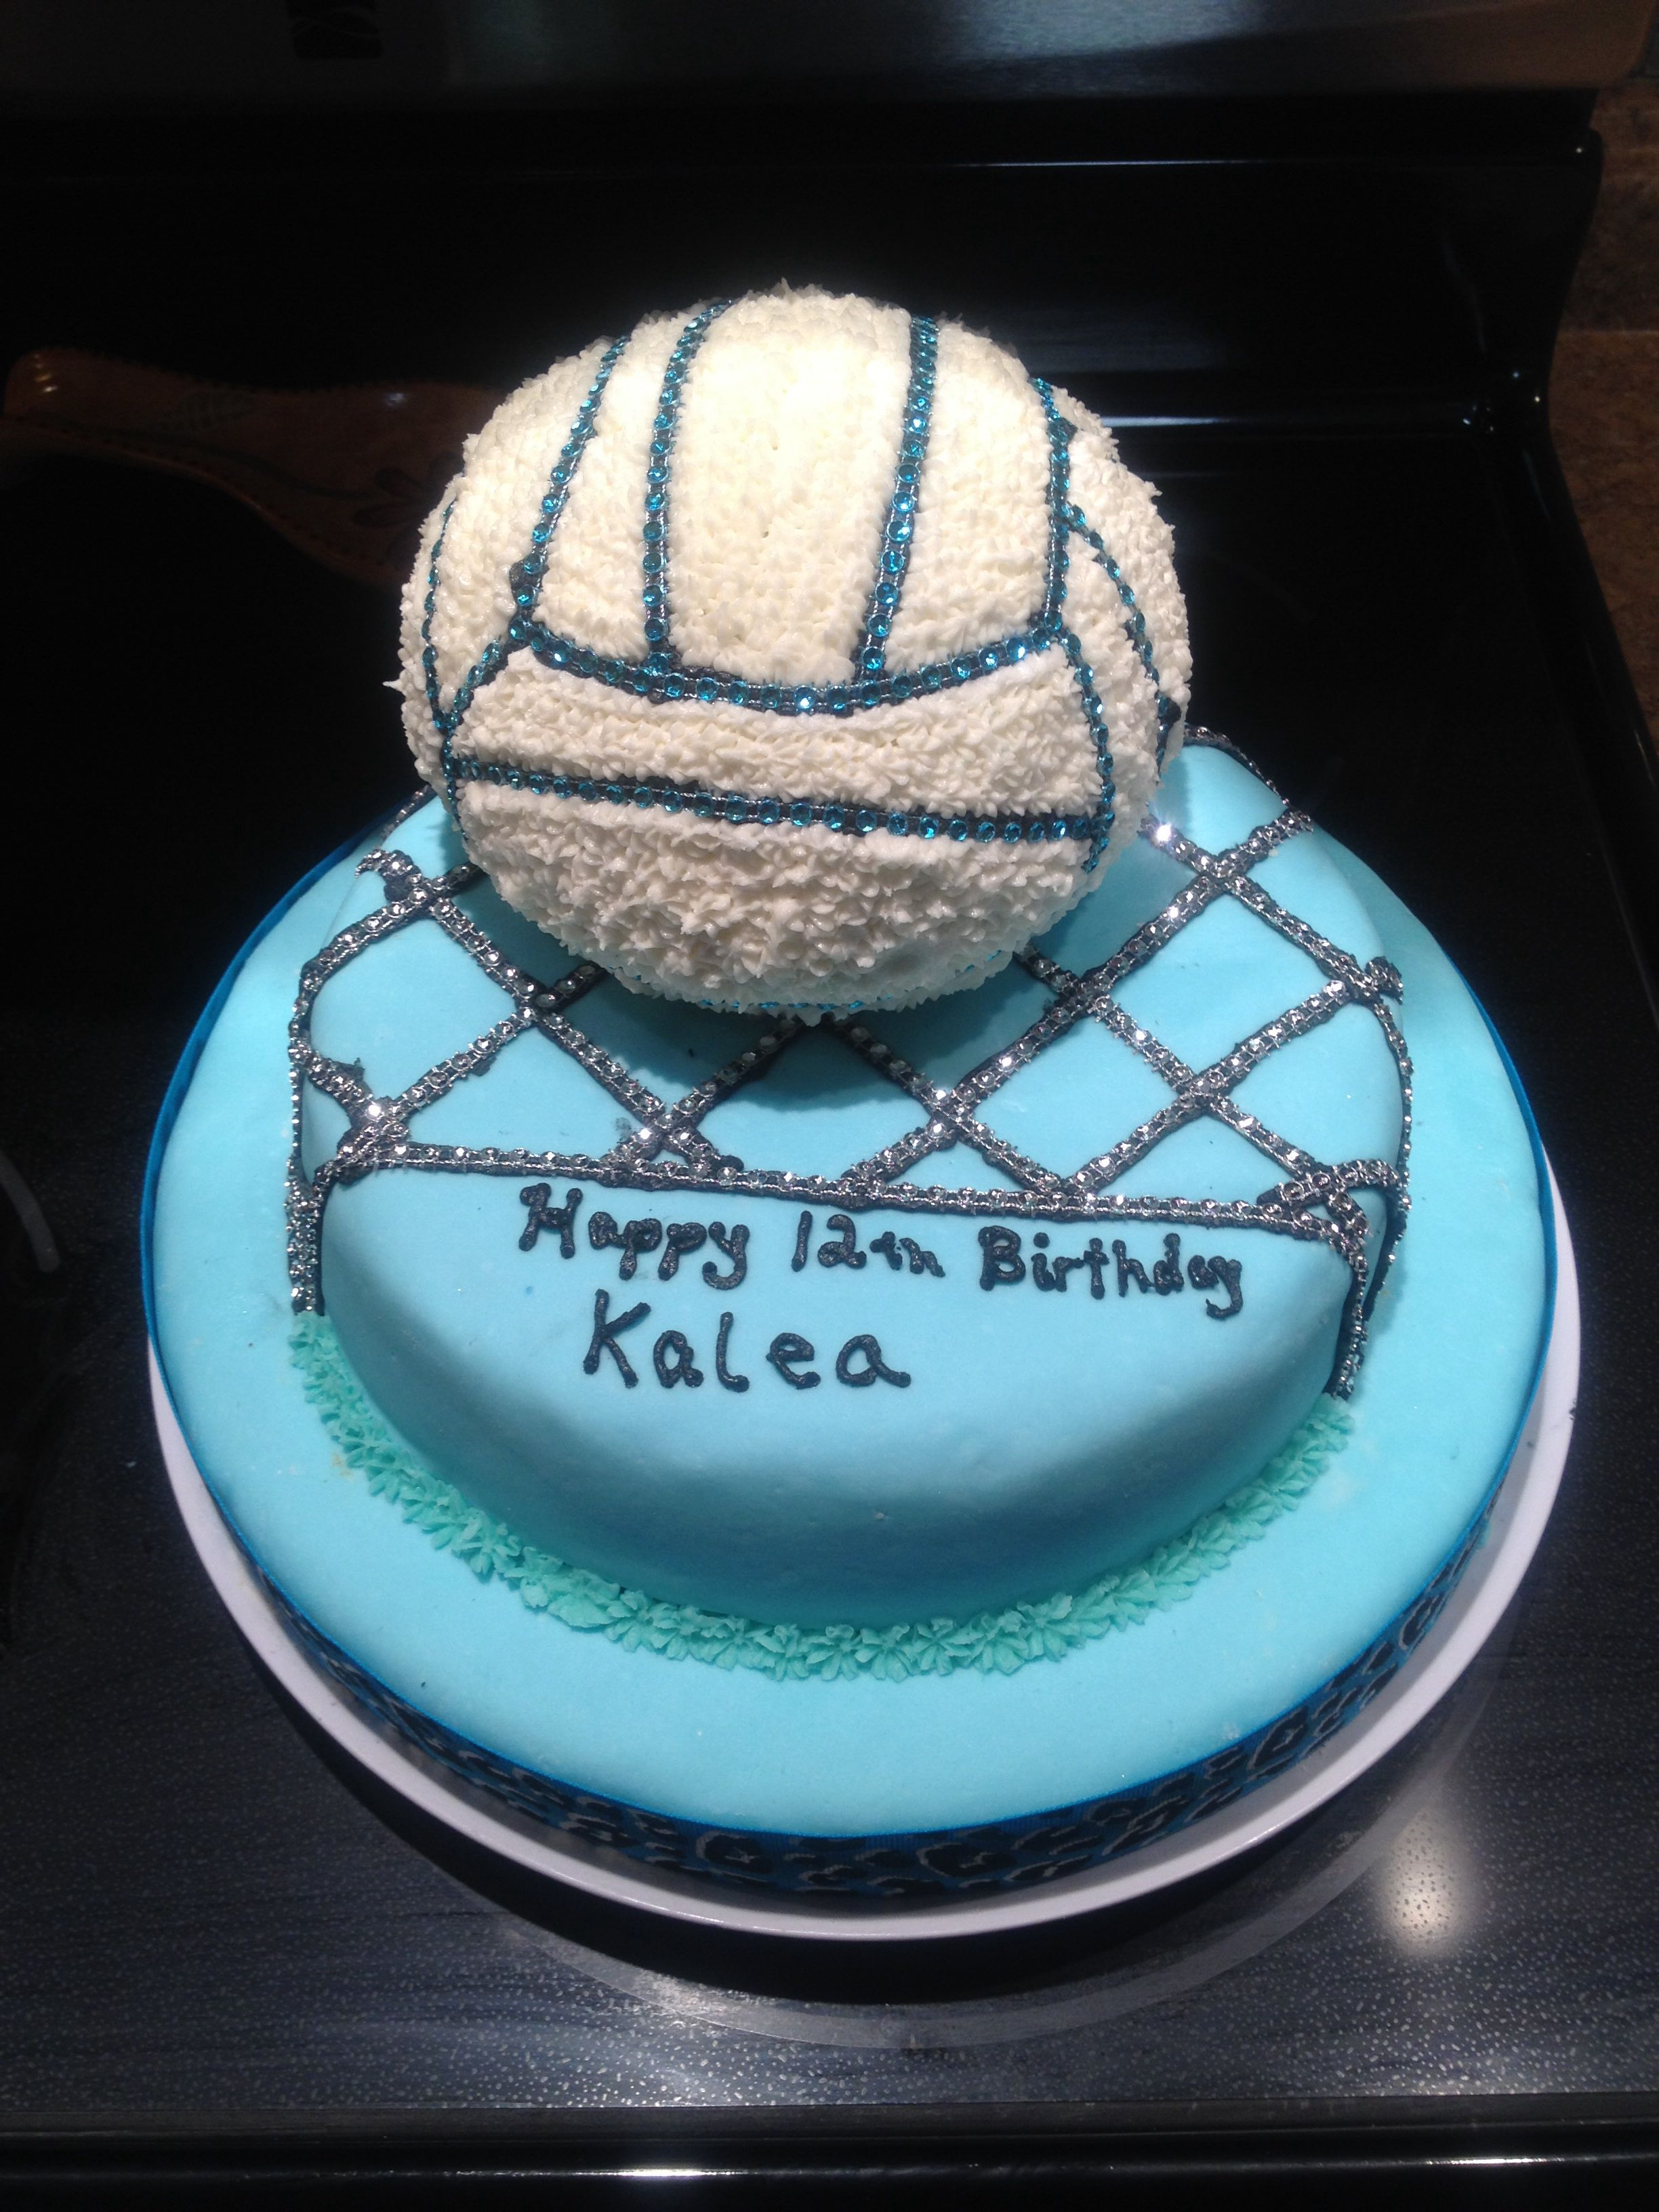 Pin By Jaci Schmidt On The Cake Chix Volleyball Birthday Cakes Volleyball Cakes Volleyball Cupcakes